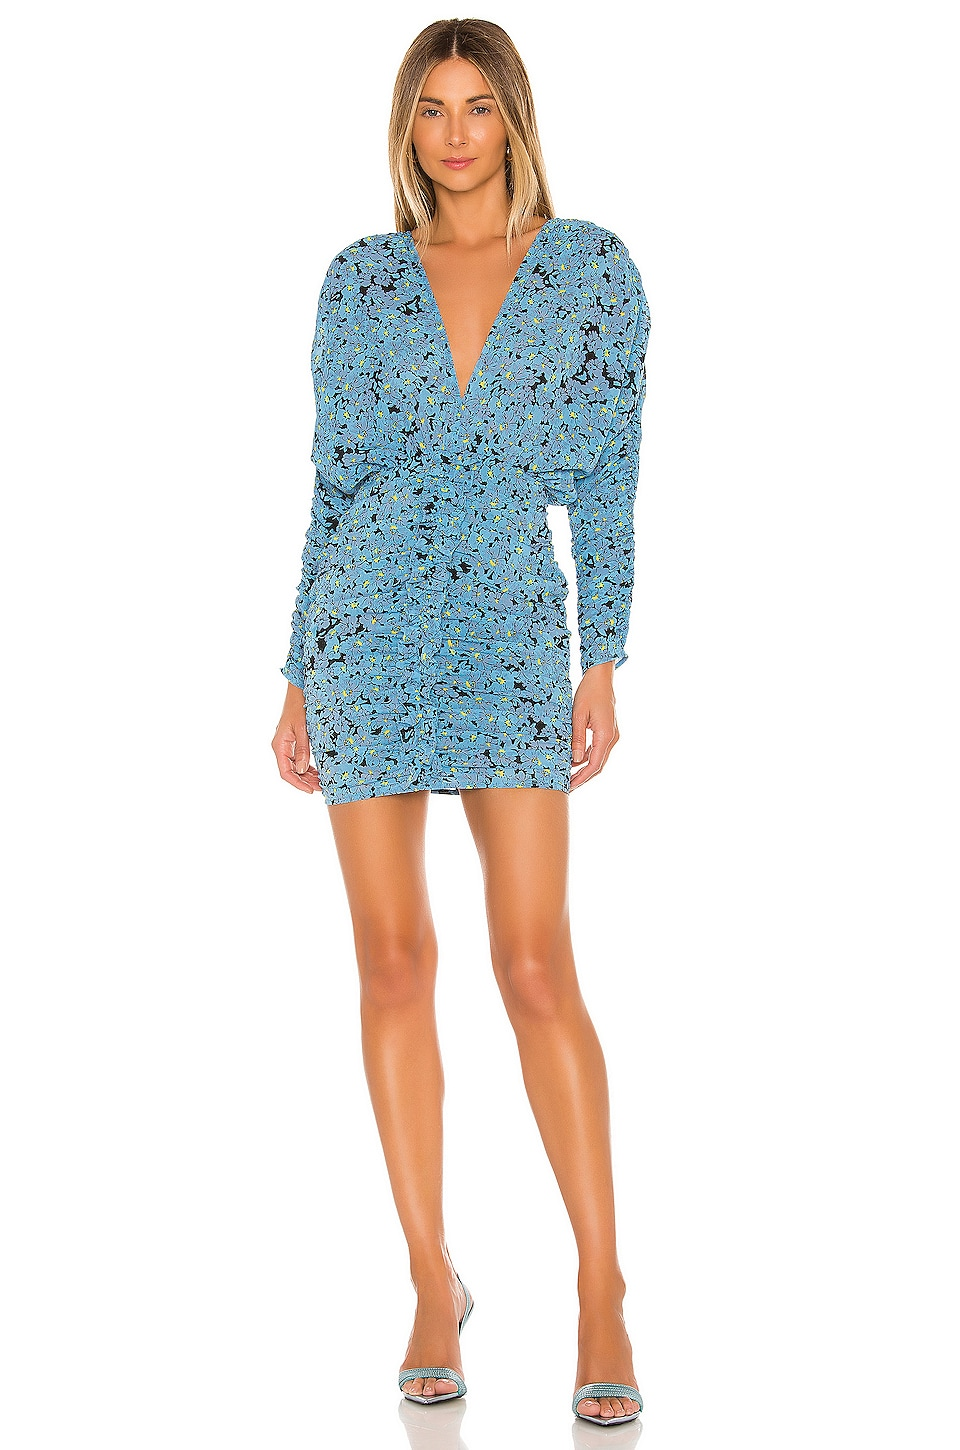 L'Academie The Nicoletta Mini Dress in Blue Floral